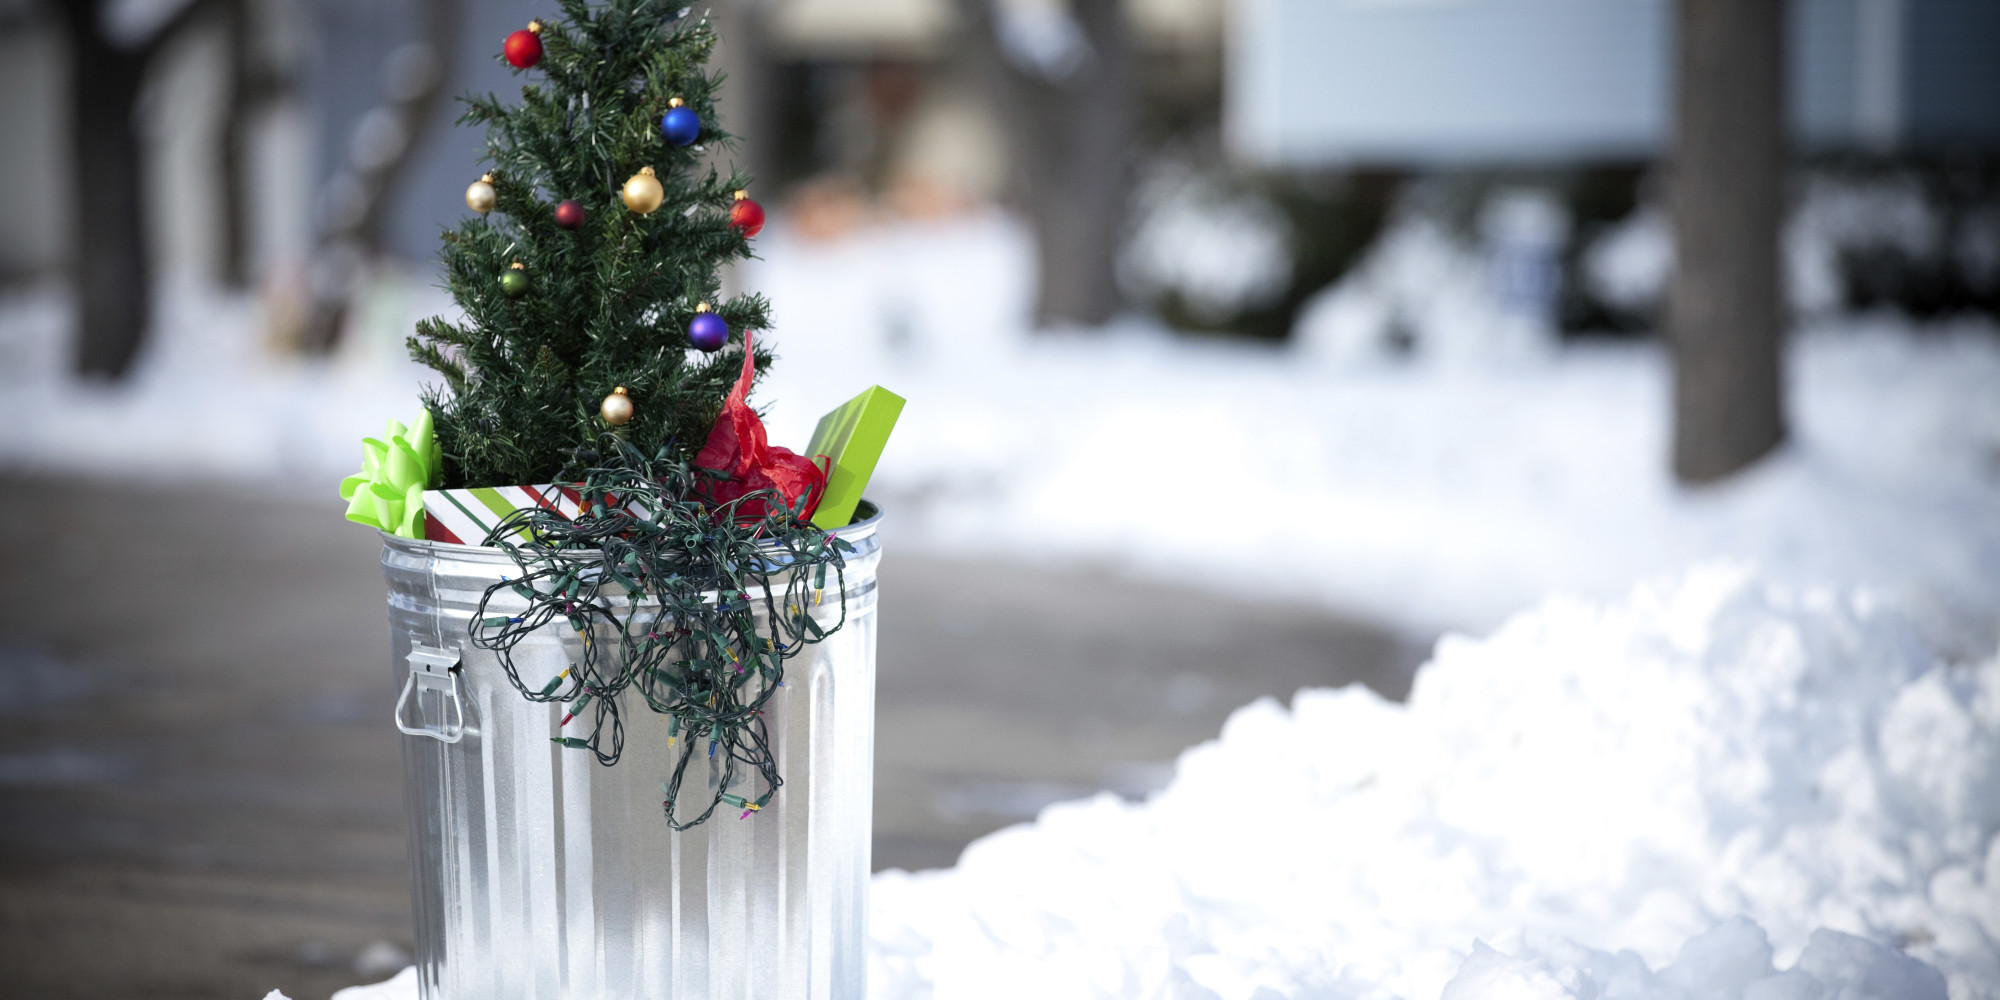 What day to take christmas decor down - What Day To Take Christmas Decor Down 1